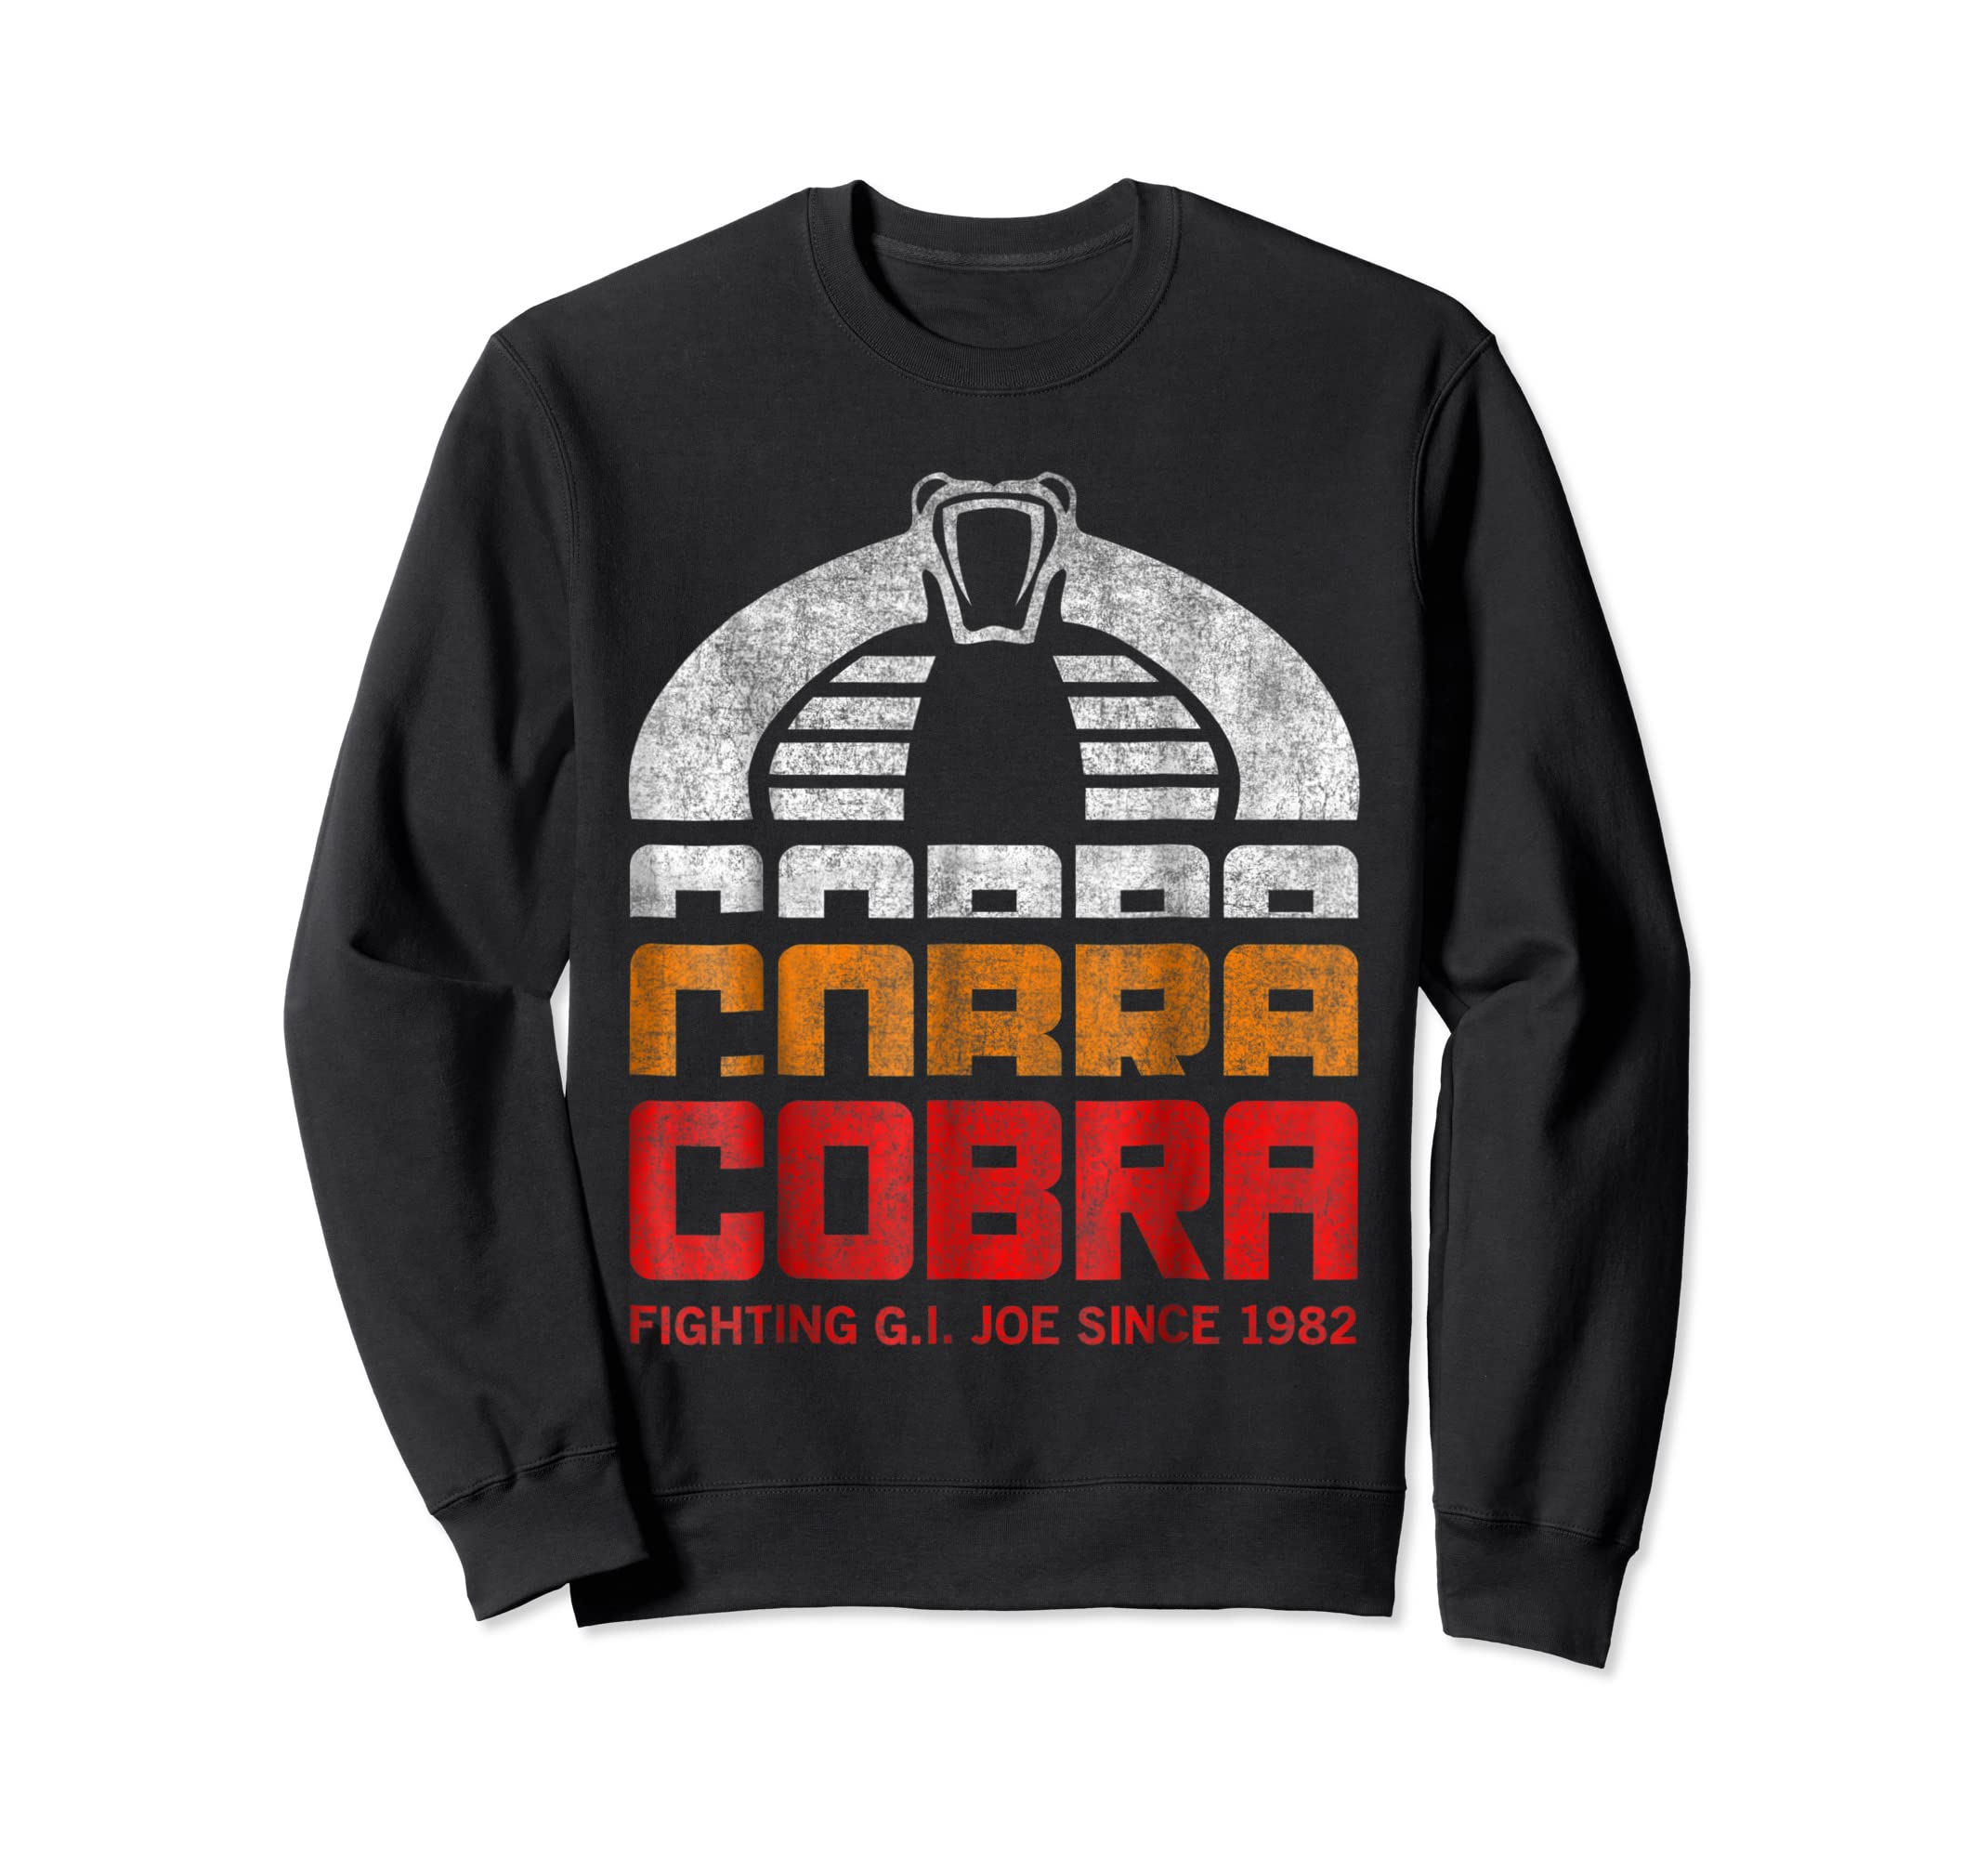 G.I. Joe Retro Cobra Fighting Since 1982 T-Shirt-Sweatshirt-Black